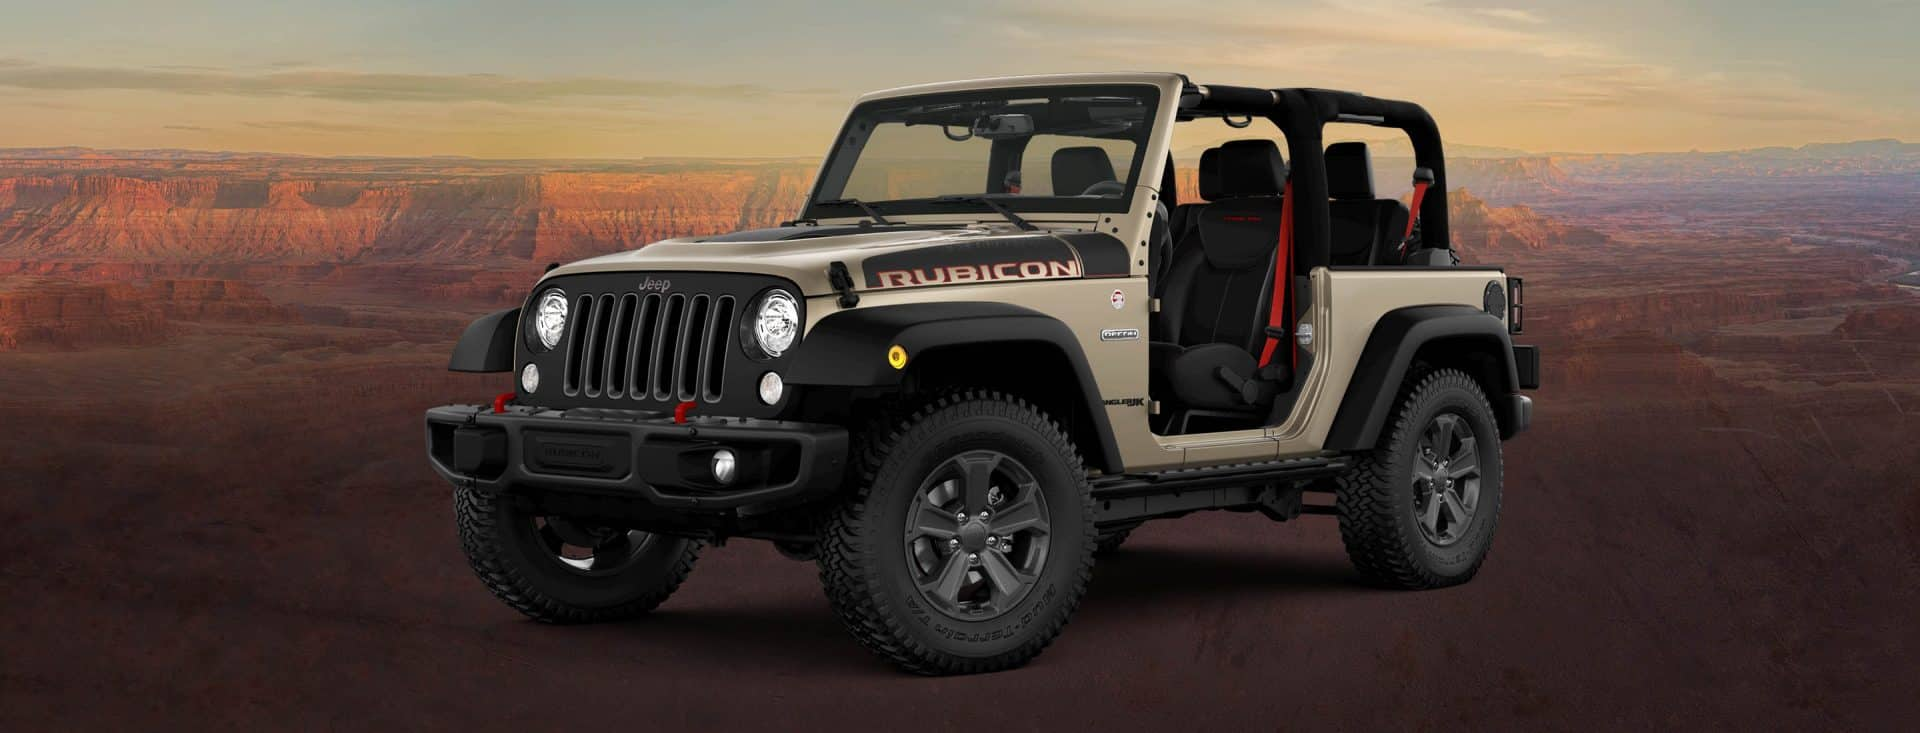 2018 jeep wrangler jk rubicon recon limited edition suv. Black Bedroom Furniture Sets. Home Design Ideas